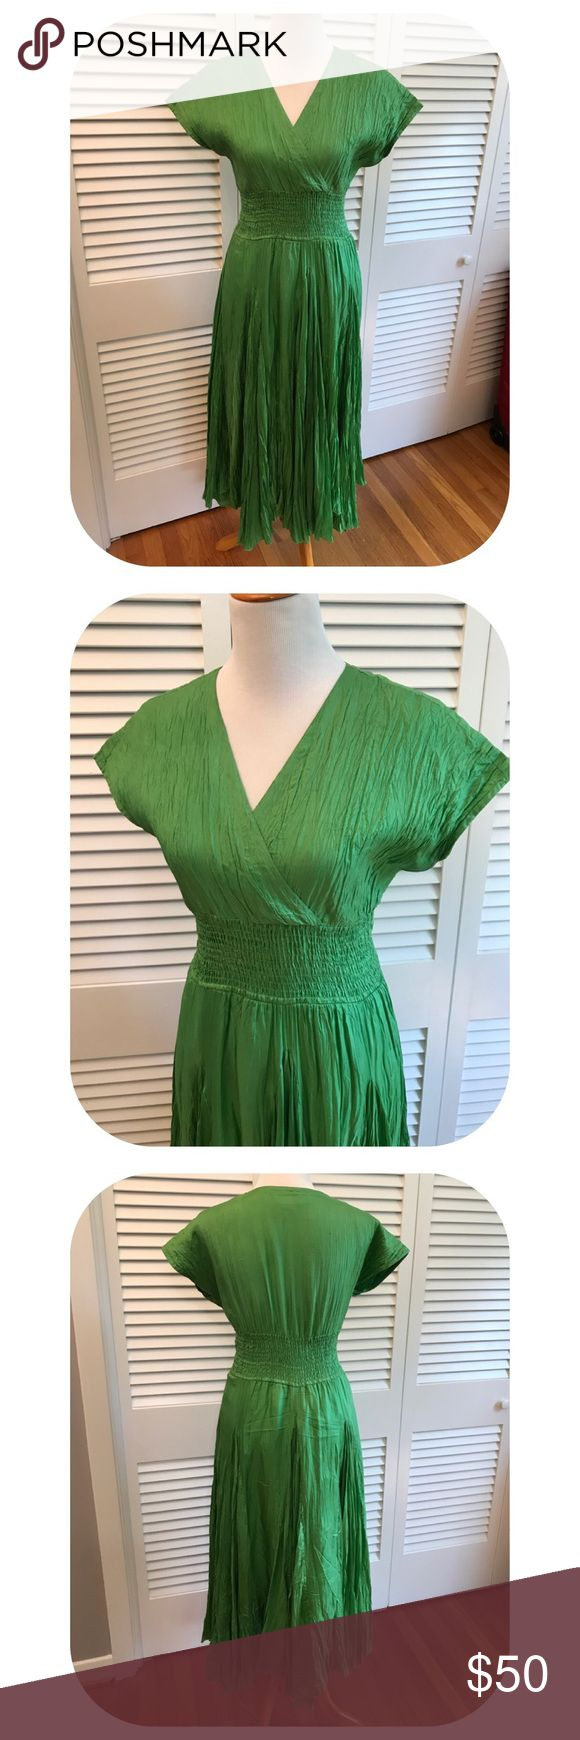 Sandy Starkman Emerald Silk Smocked Waist Dress Sandy Starkman Emerald Silk Smocked Waist Dress. Faux wrap top with a smocked waist and gored, full skirt. Dolman short sleeves. So light and comfortable! Made from emerald green crinkled silk - so, the best travel dress EVER! Wear with heels and jewelry or flip flops and a Panama hat! Size small, which Neiman Marcus lists as a 2 - 4, but I can easily wear it when I'm a size 8. Two small dark marks on the back of the right shoulder. Barely…